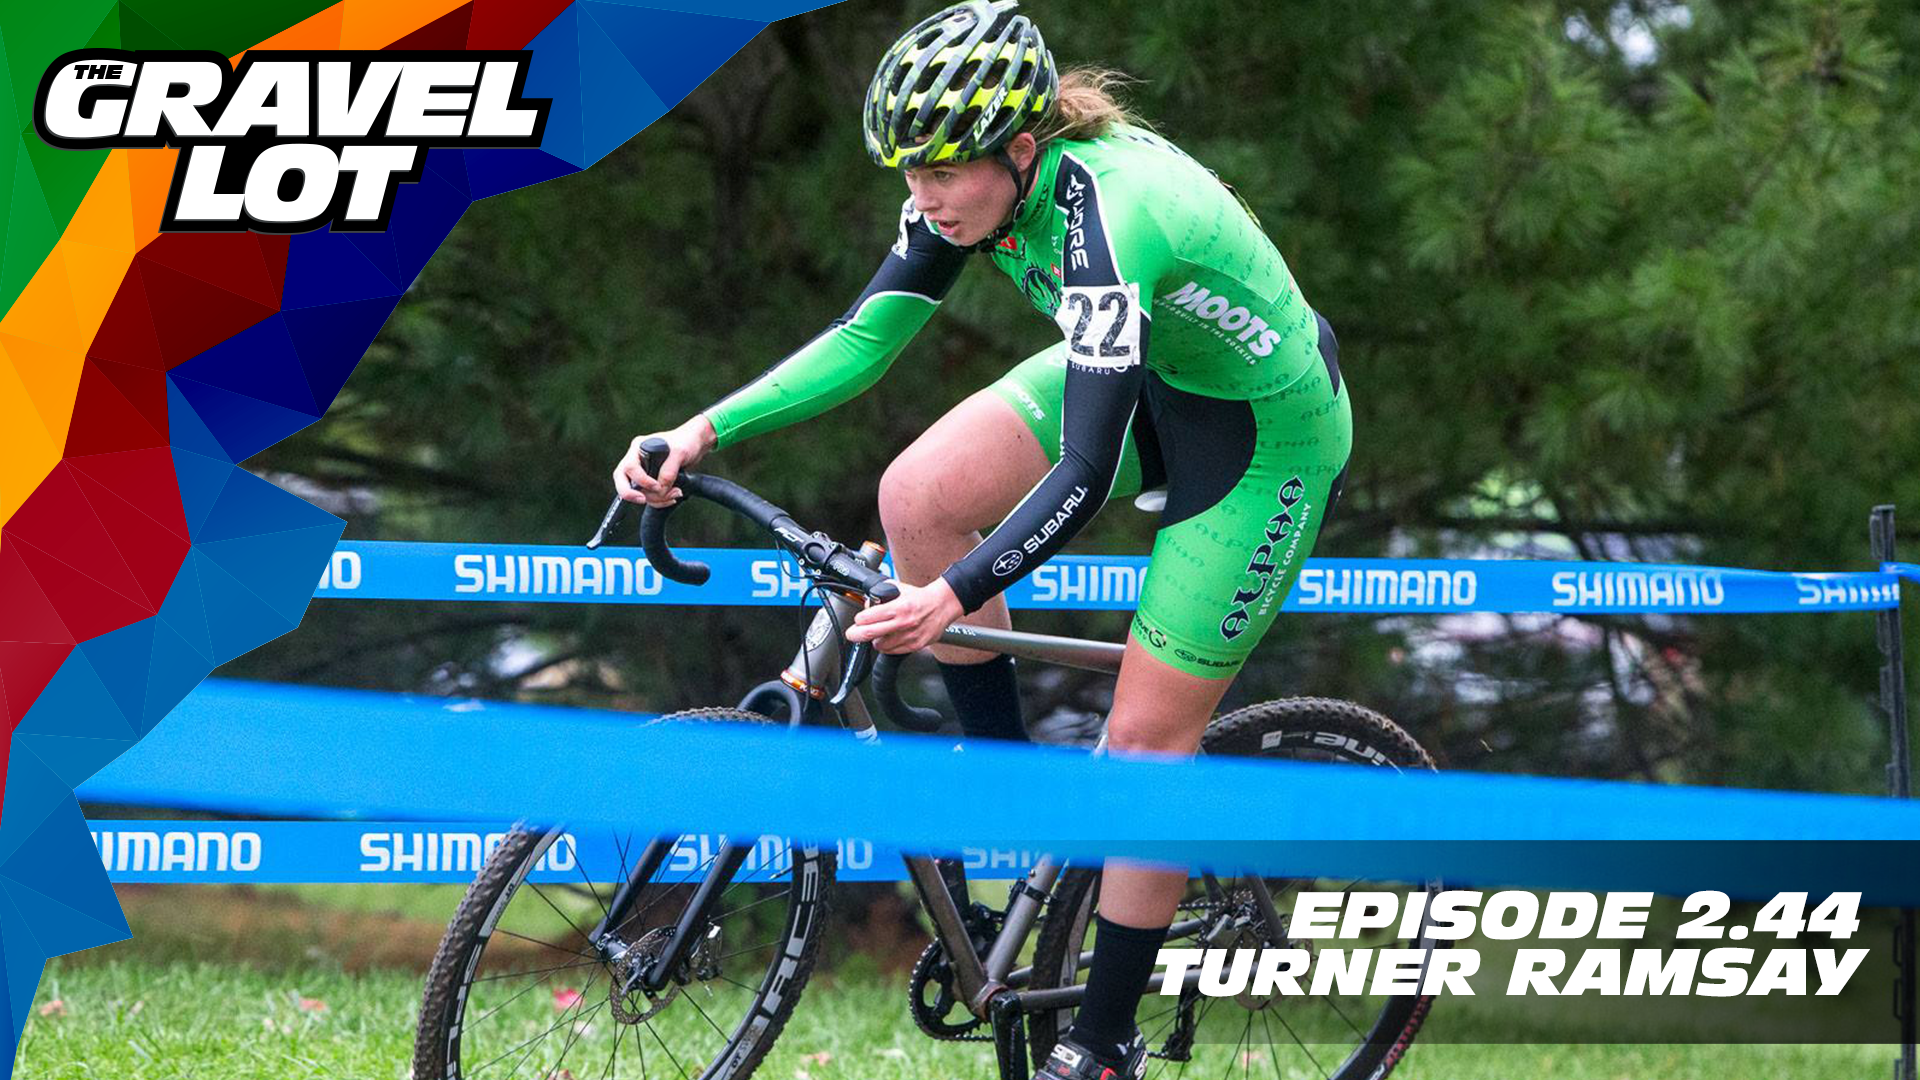 "Originally from Vermont, Turner Ramsay has grown up on cyclocross venues across the globe, winning races and even a National Championship along the way. We sat down with her inside of Trek HQ in Waterloo and discuss tacos, maple syrup, and what it feels like to win a National Championship. Photo: Kent Baumgardt   Precision Hydration: Save 15% off on entire order using code ""gravellot"" at checkout    Learn more about the WORX Hydroshot: Use code ""cleanbike"" at checkout for 15% off    WHOOP    Grimpeur Brothers Coffee: Purchase The Full Schleck or Hello Cyclocross Friends Espresso and support WAP today!    Handup Gloves: Use code ""PEBBLE$"" for 20% off EVERYTHING in store.    RoadID: Save $10 off ANY order over $20.    Be Free Ride Bikes:    Exclusive Preview of Unknown Country: One man's inspirational journey to the Dirty Kanza XL    Visit The Gravel Lot website for our latest podcast, Real Talk videos, Bonus Content, shop, social media, and everything in between.   Subscribe to The Gravel Lot on the  Wide Angle Podium Network and become a member TODAY and get access to EXCLUSIVE bonus content.   Learn more about Undertipper and download their latest album ""Y'all"" at:  http://undertipper.bandcamp.com/"